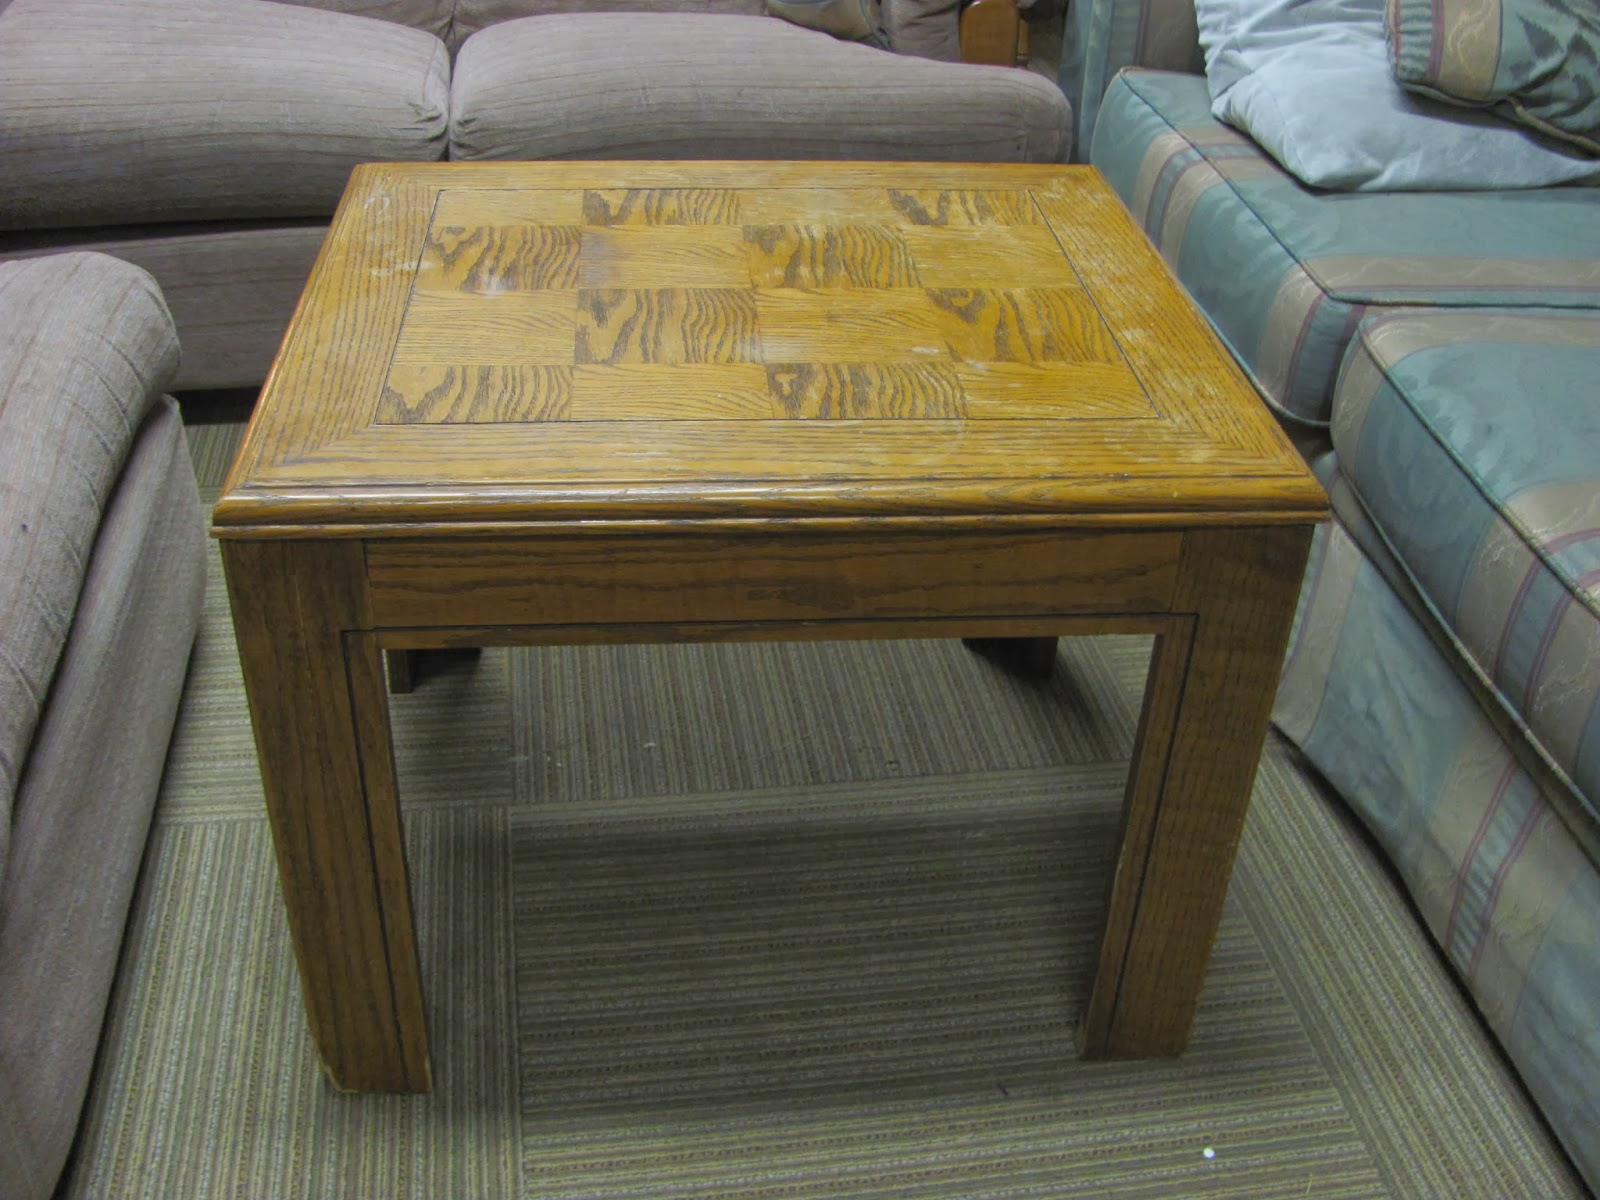 Love This Table That Sits Between Several Couches Chairs Can Easily Be Moved And A Great Tabletop To Type Something Up While Still Comfy